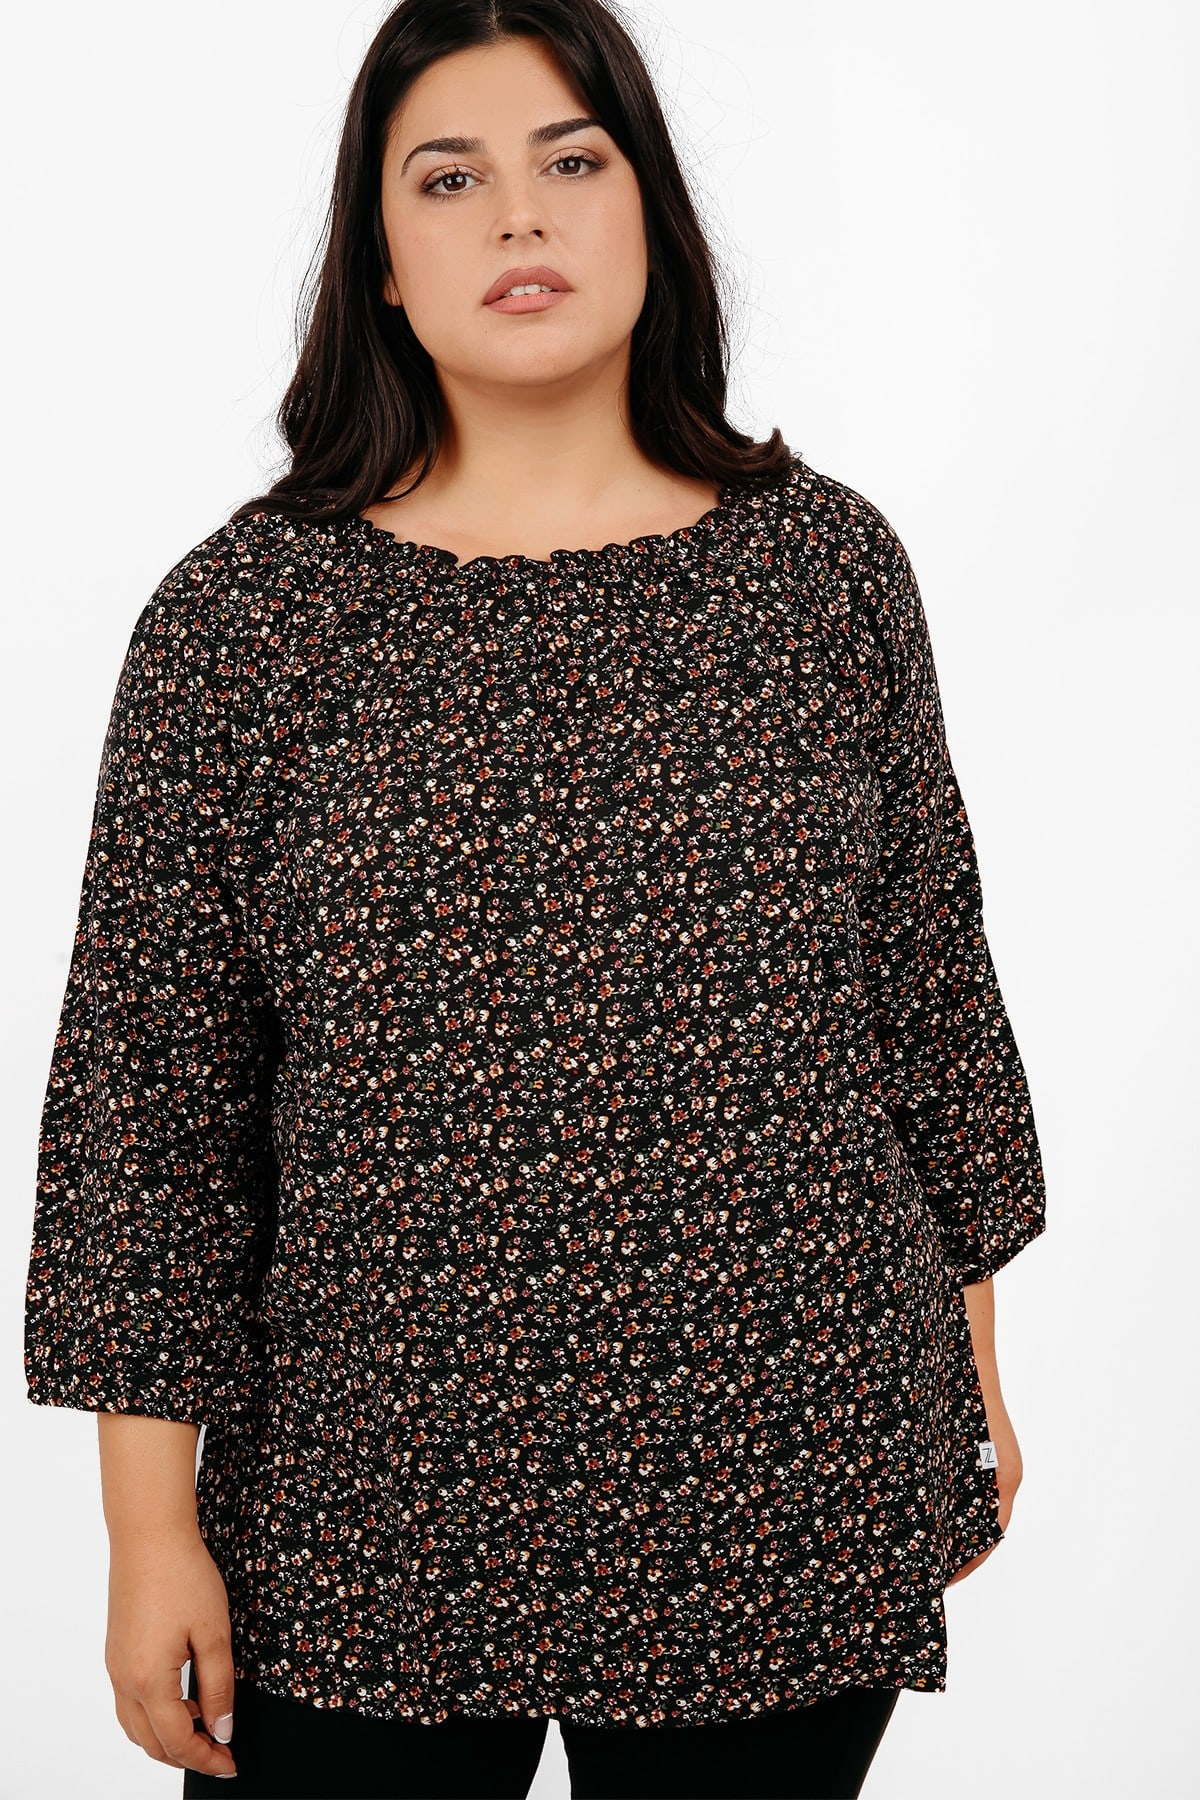 Floral blouse with elastic neck